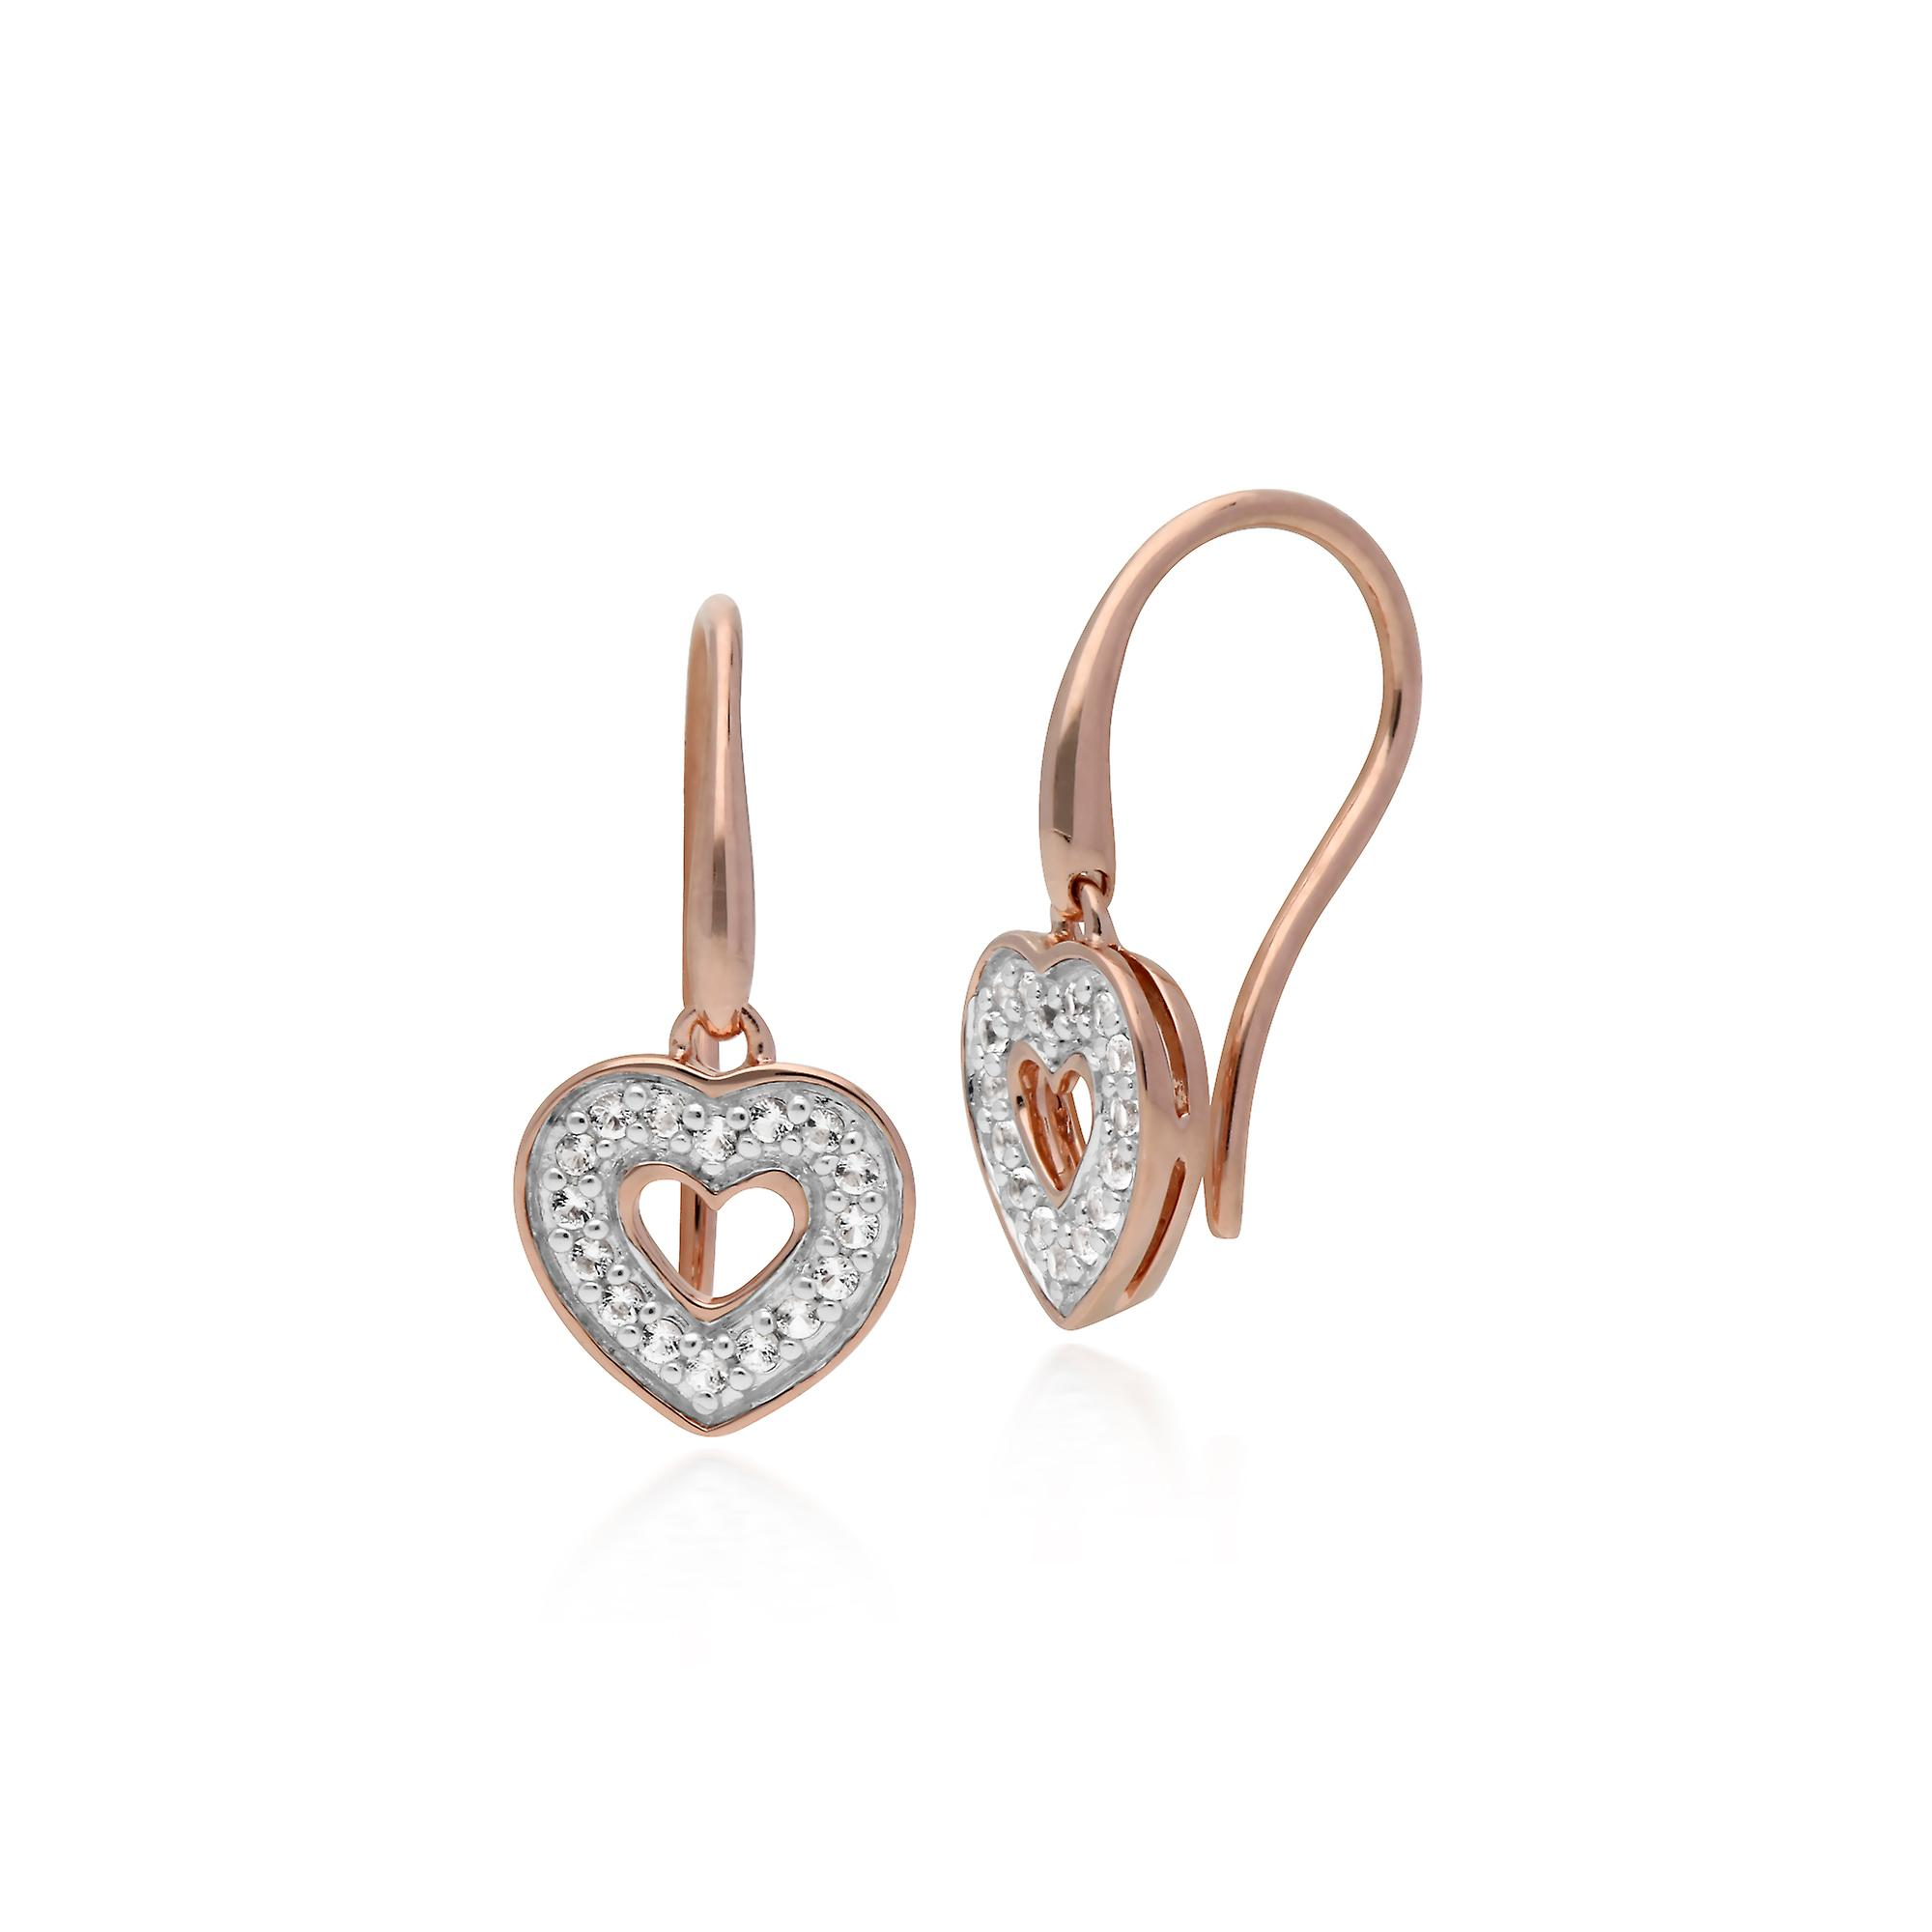 Gemondo Rose Gold Plated Sterling Silver Clear Topaz Earrings